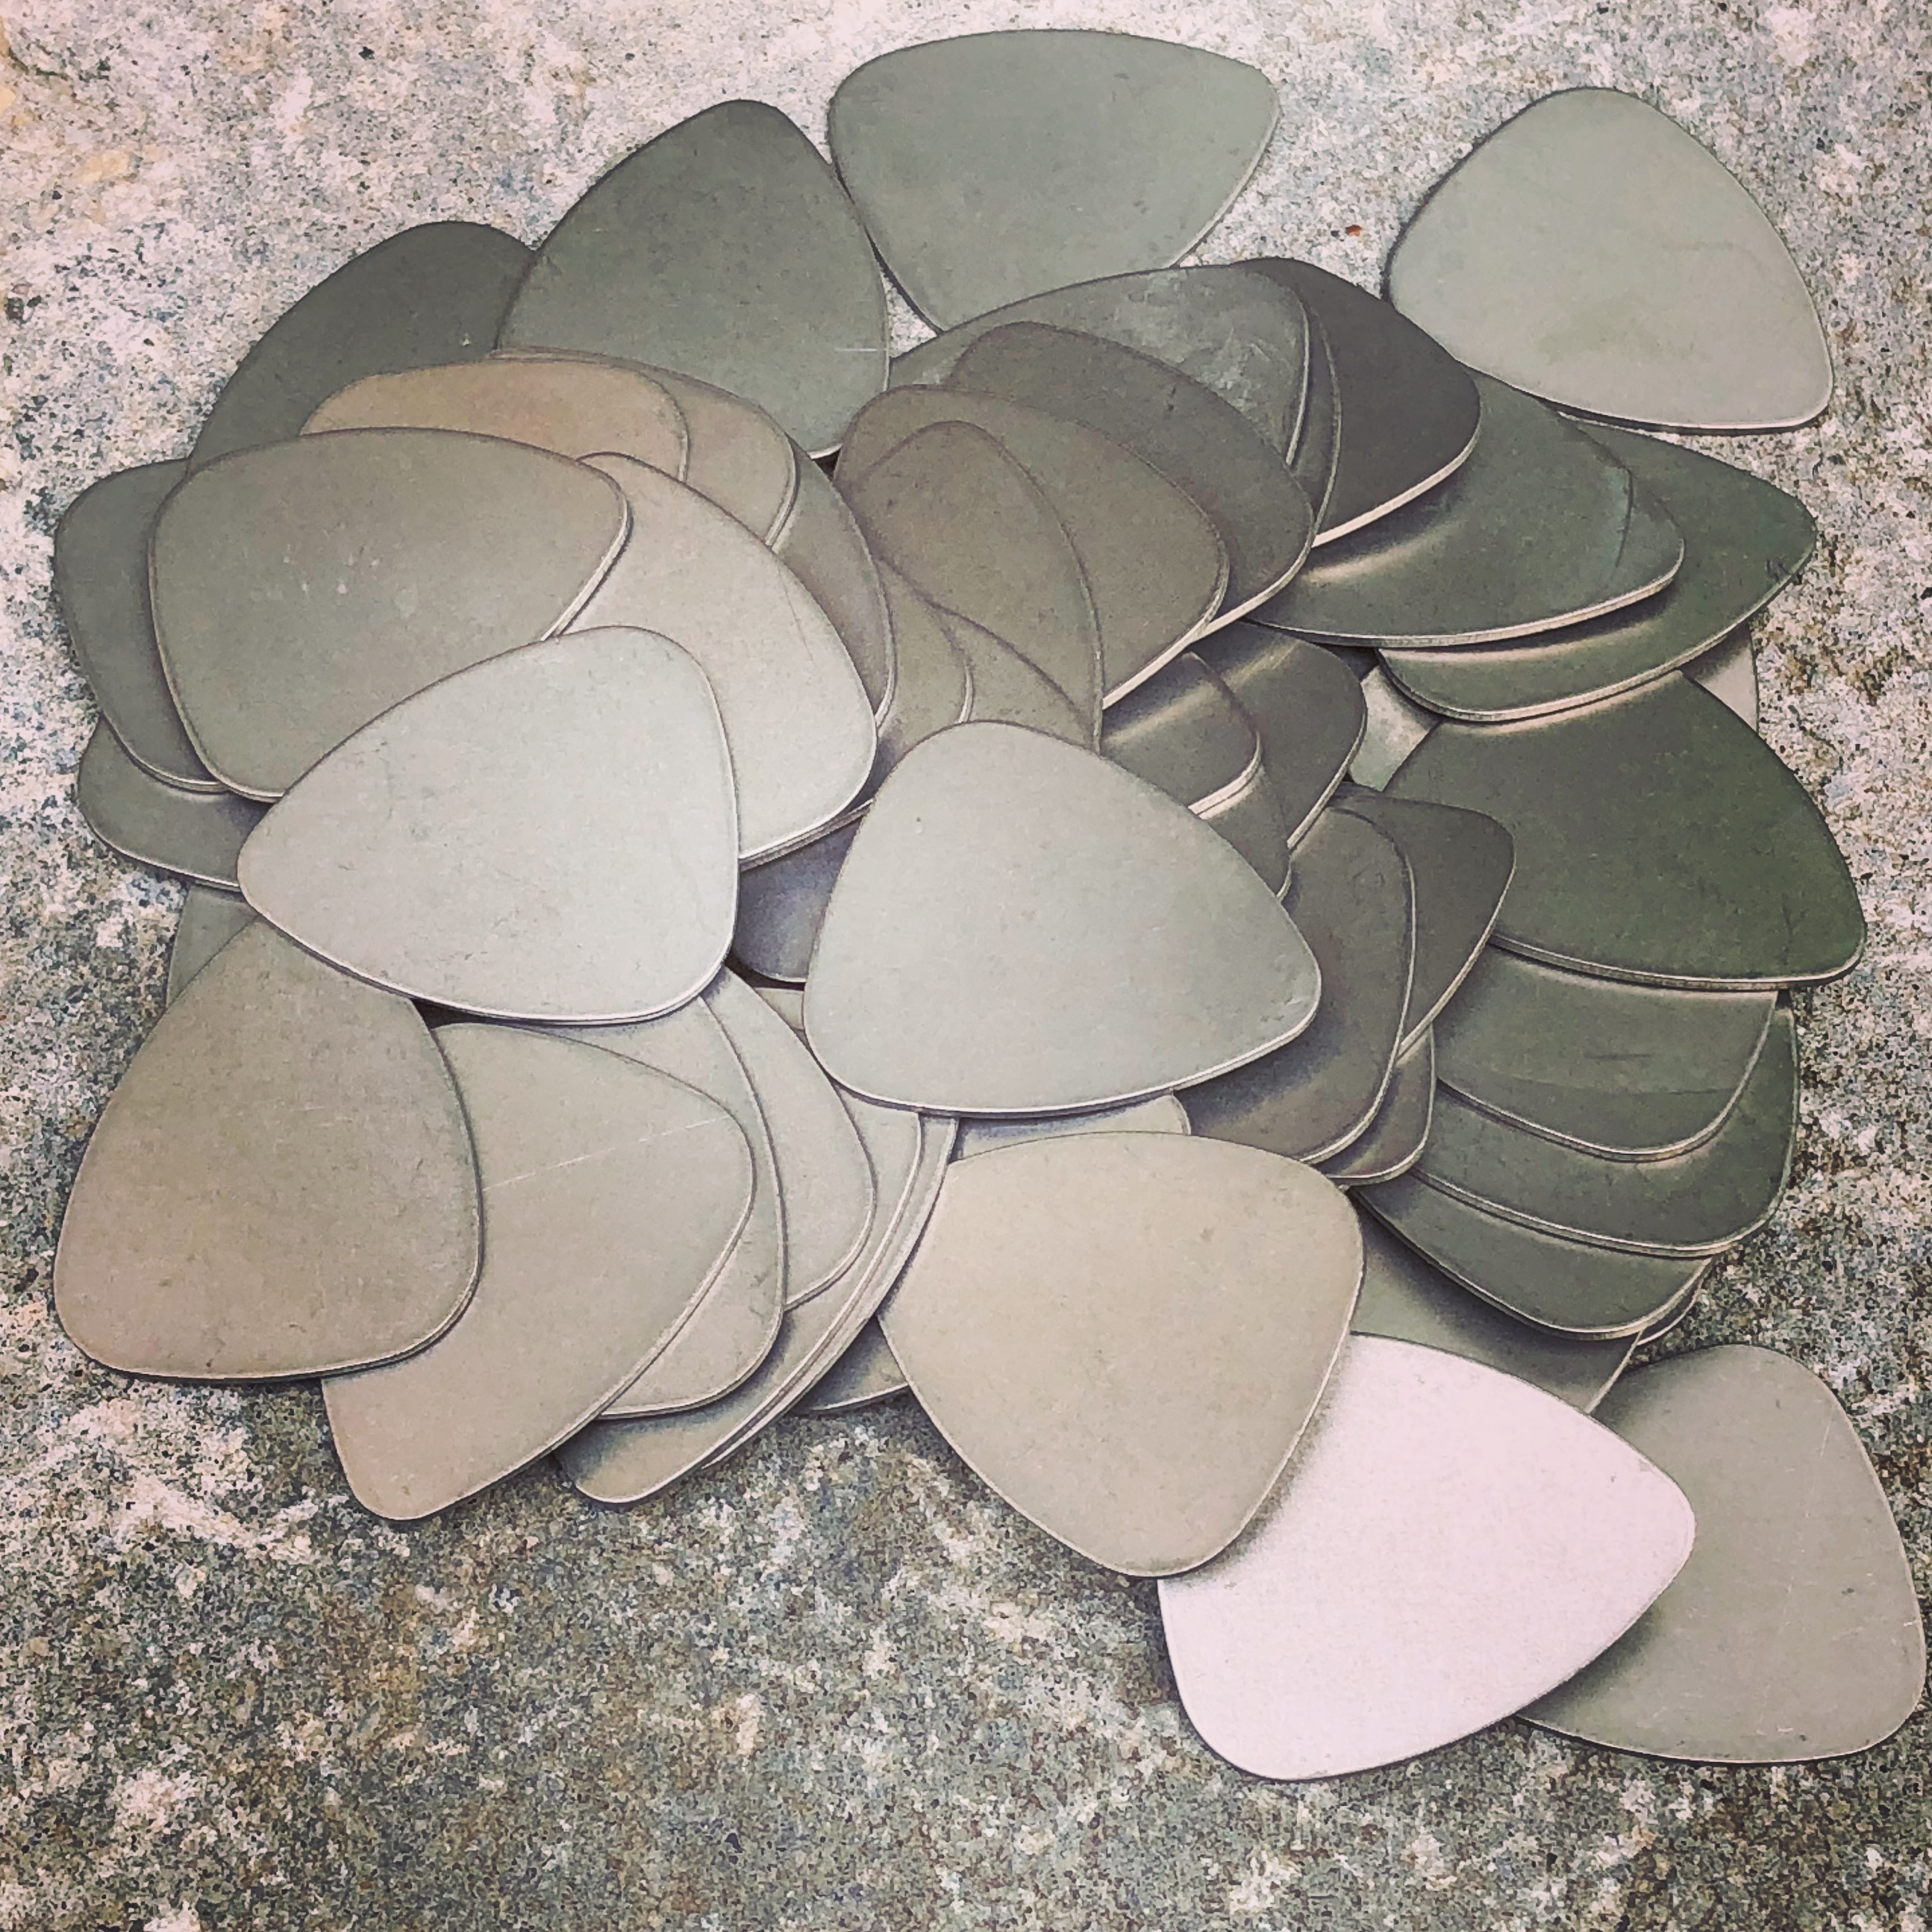 Raw titanium guitar picks.  Lots of work to finish.